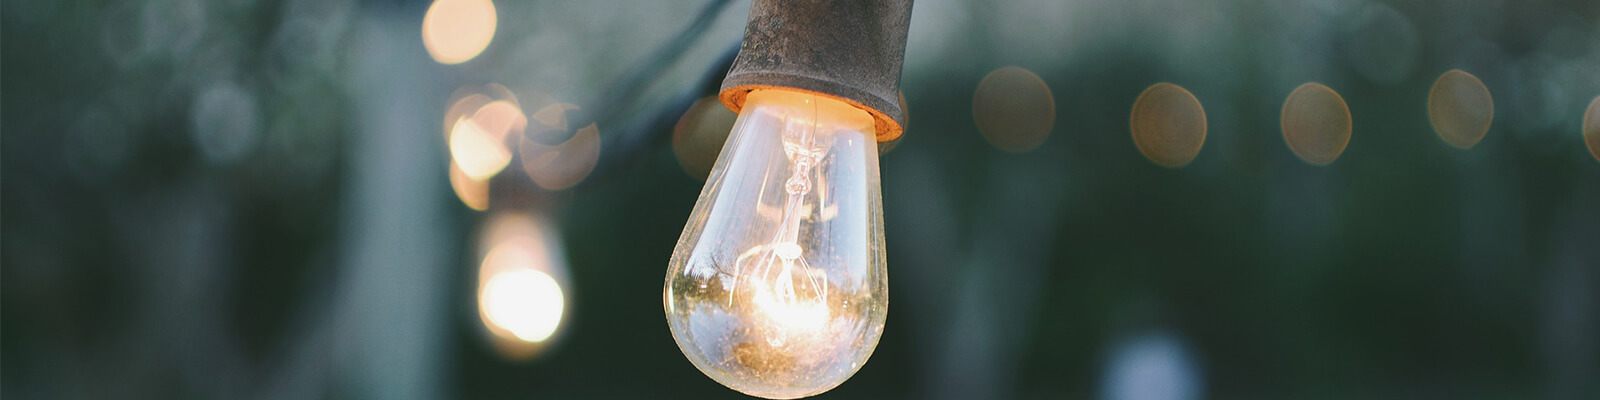 Best Outdoor Light Bulbs worth to buy in 2019